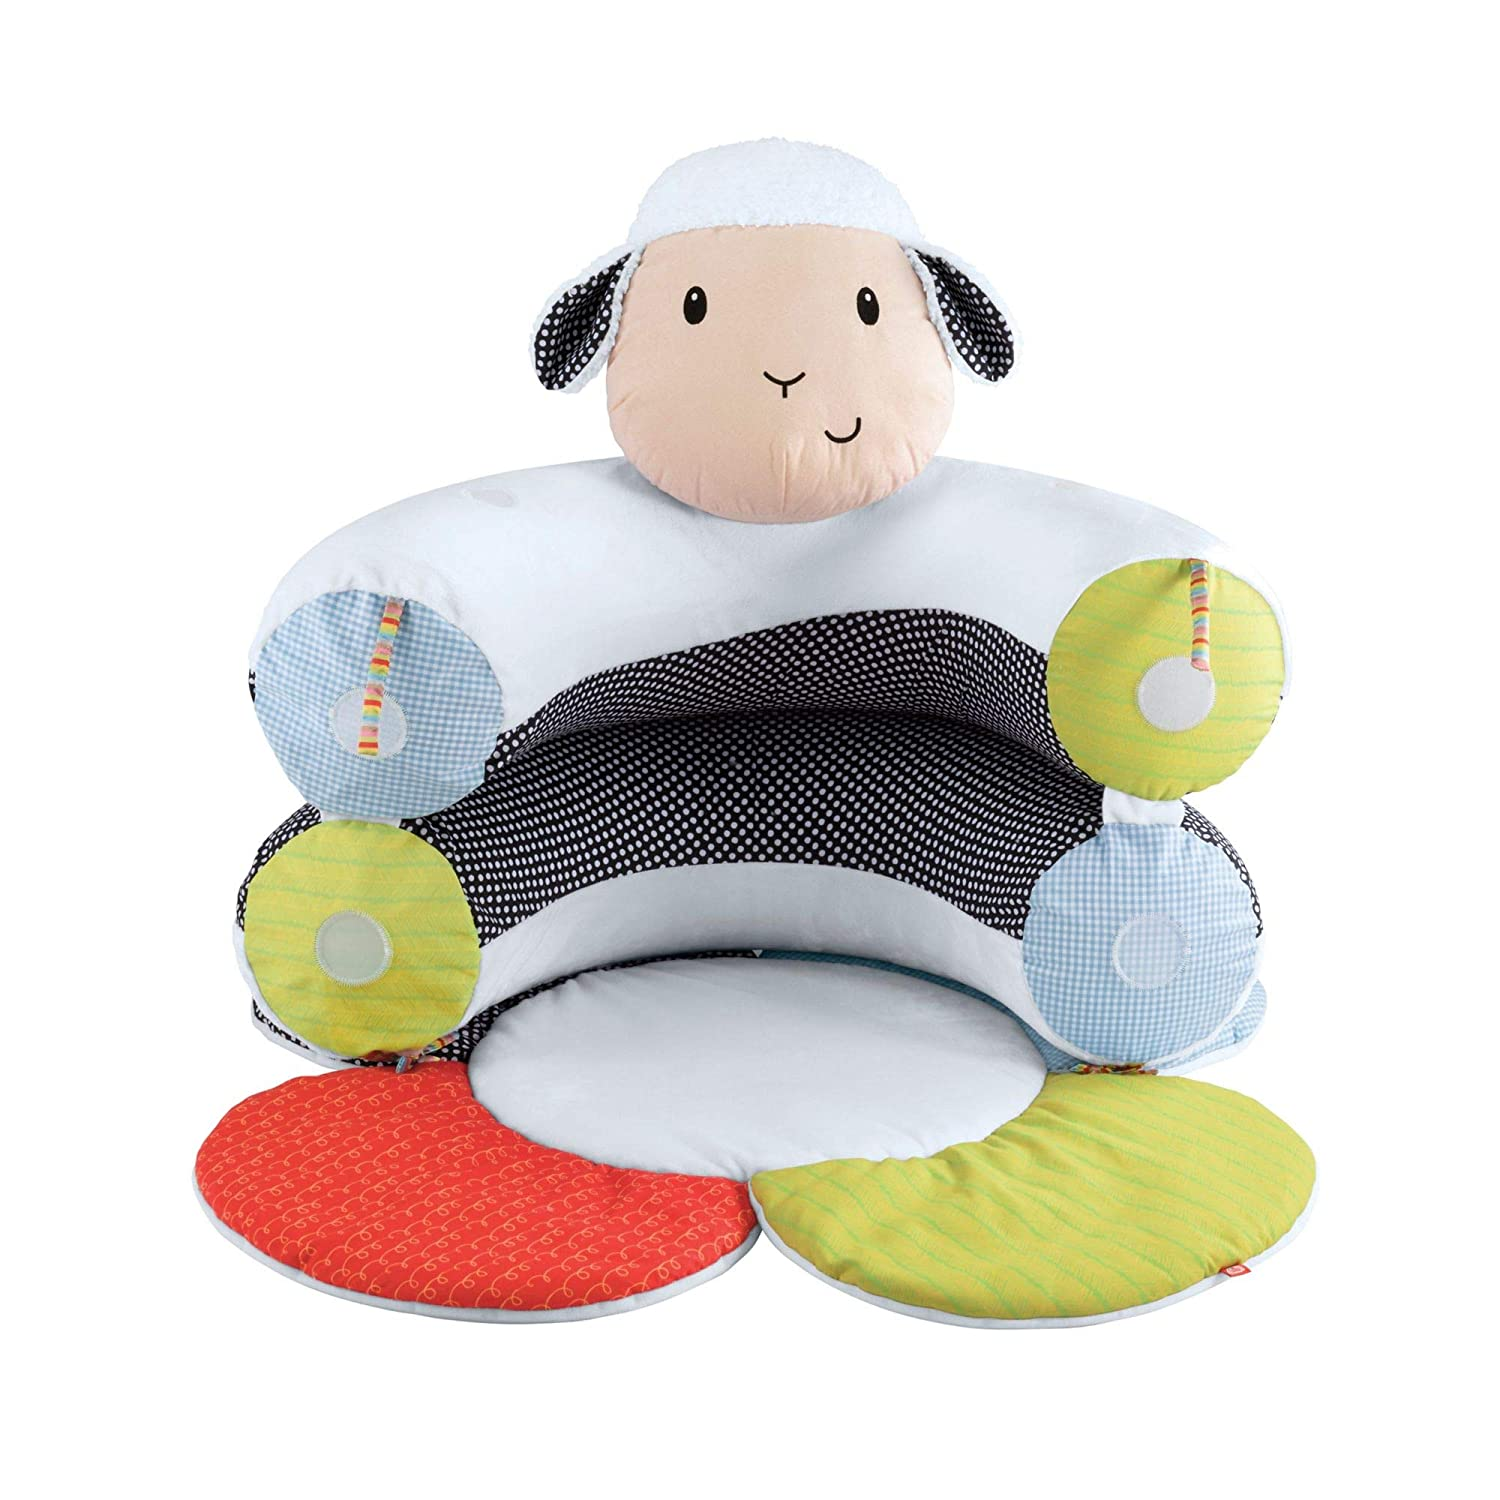 Early Learning Centre 148349 BF Sit Me Up Agnello, Multi